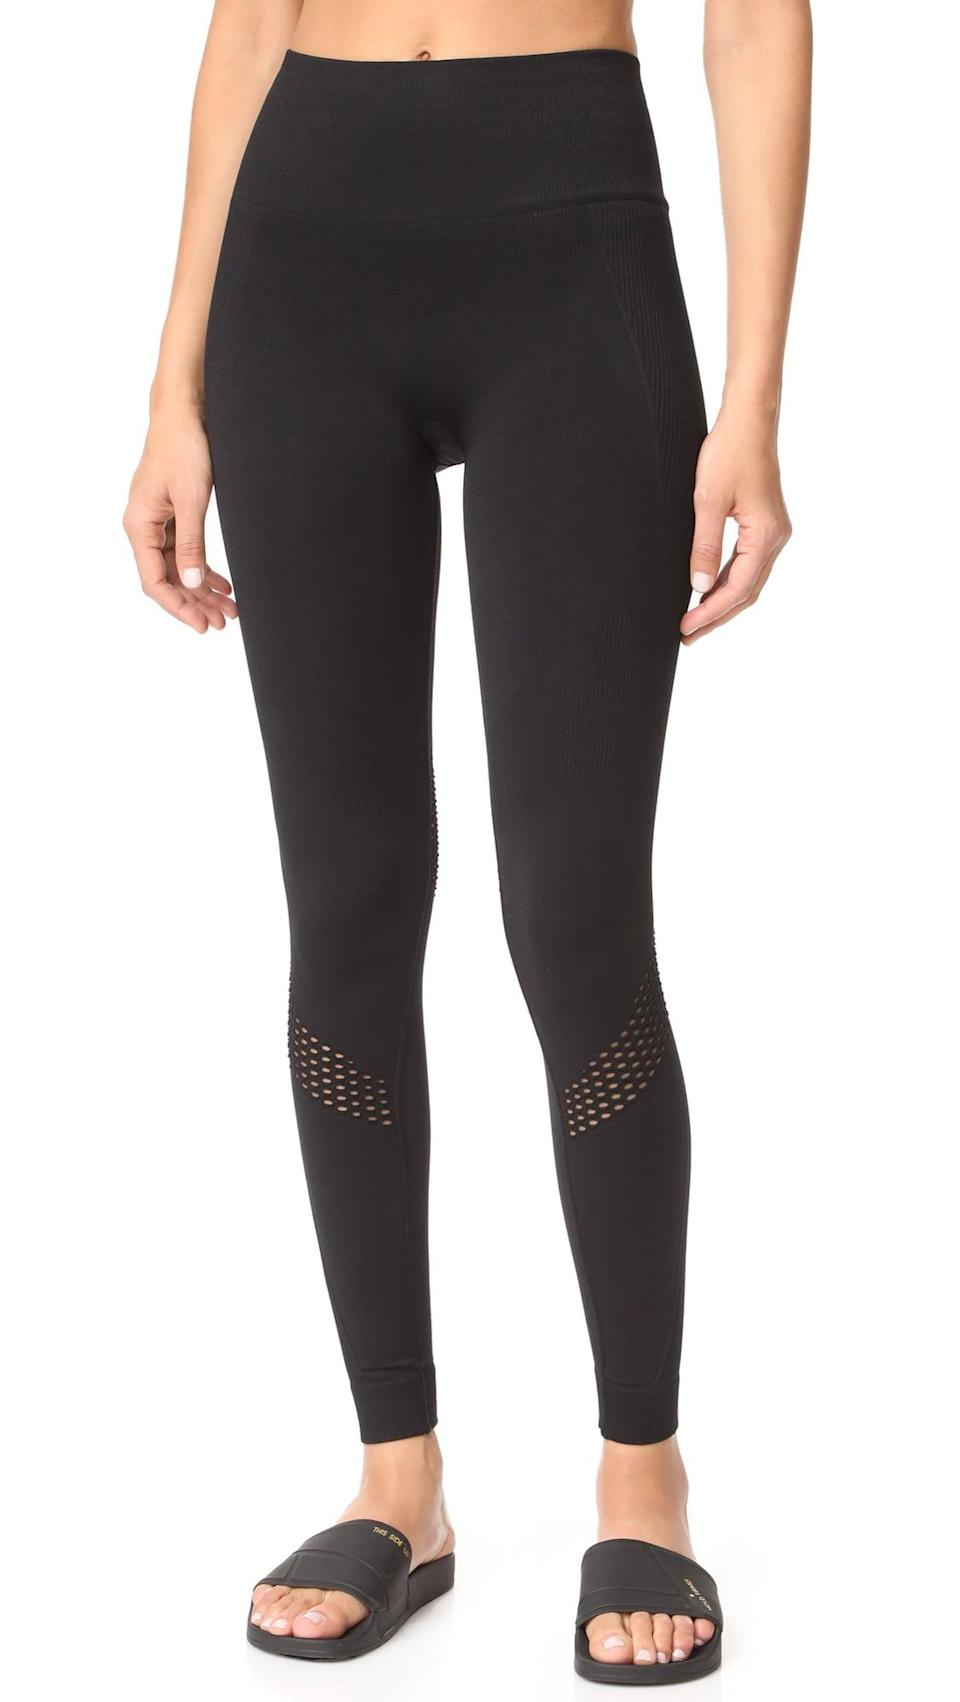 <p>High-waisted and so comfortable, these <span>Alala Seamless Leggings</span> ($95) are exactly what you're going to want to wear.</p>